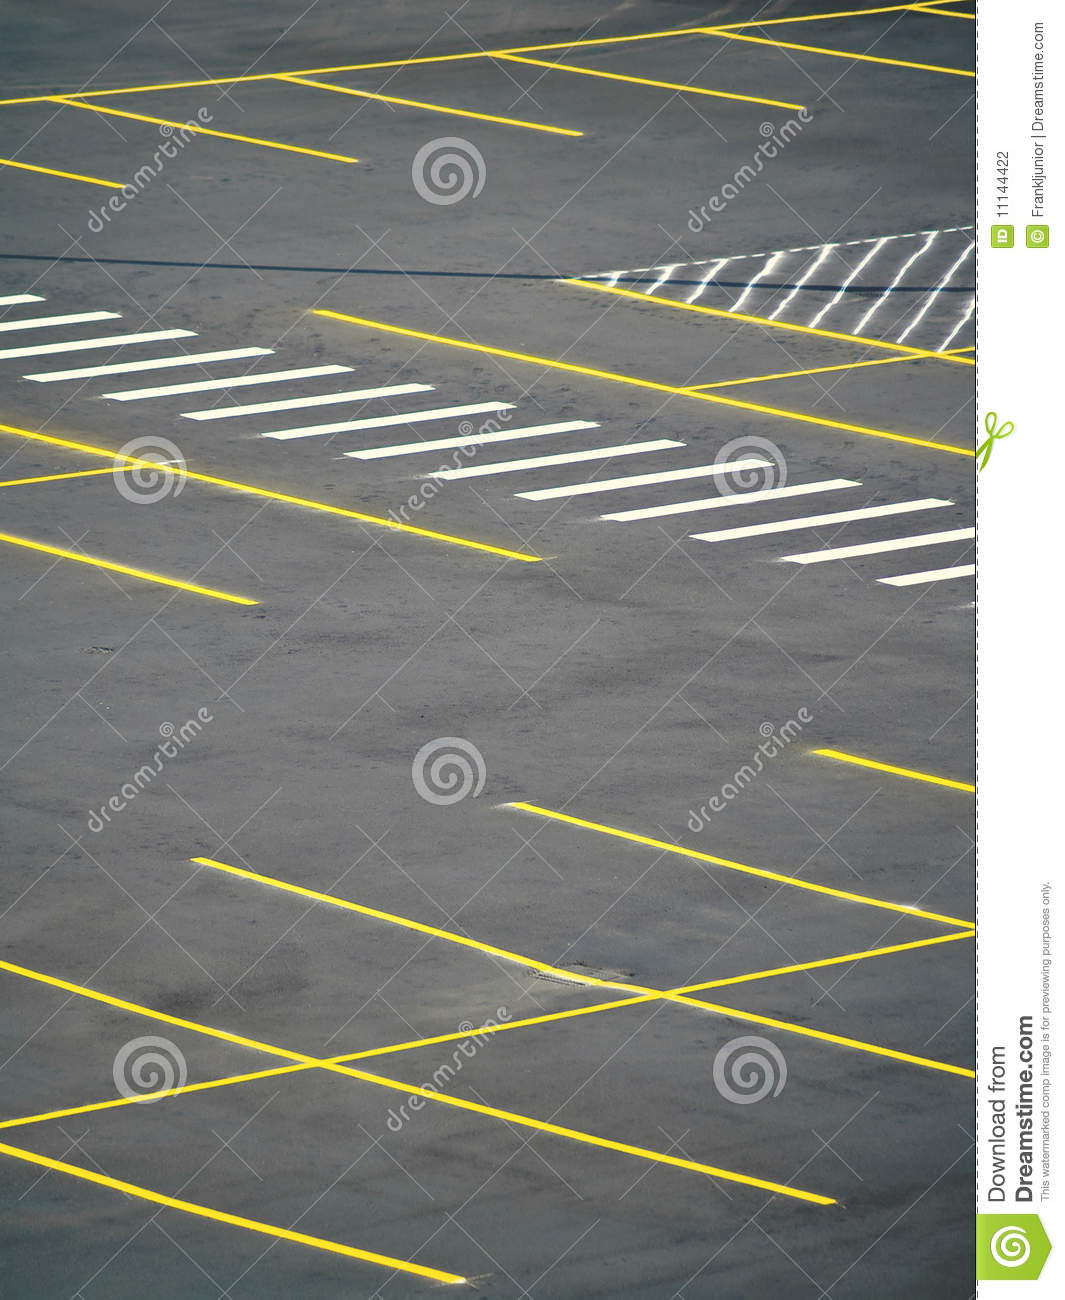 Empty Parking Lot Stock Photo. Image Of Exterior, Airport